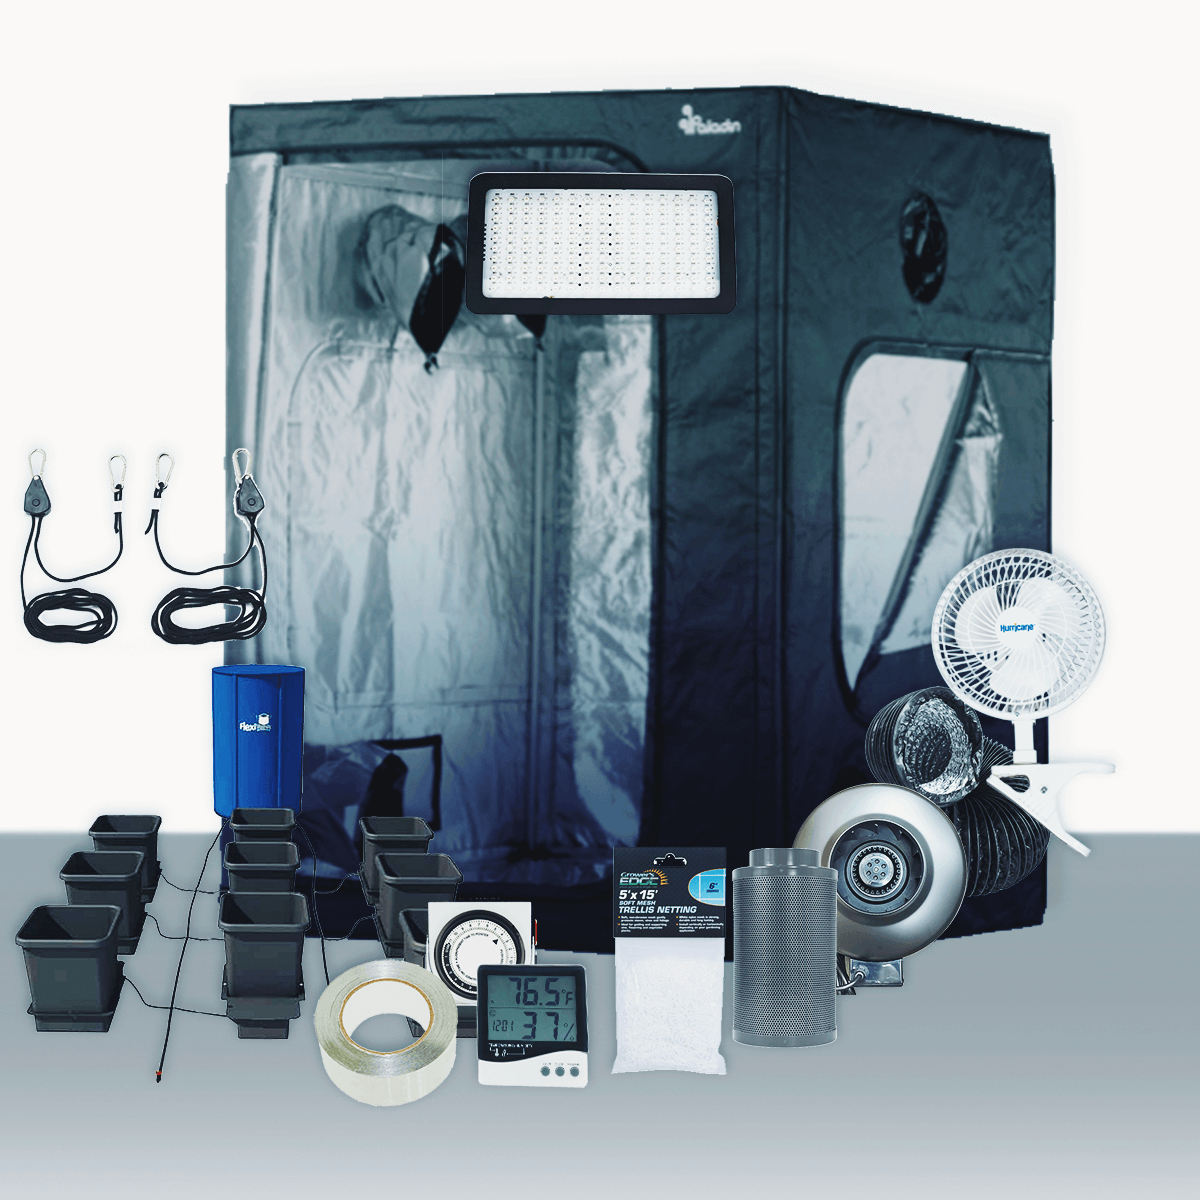 """5' x 5' Grow Room 320W PLS LED Hydro Complete Grow Tent Package 5' x 5' Grow Room 320W PLS LED Hydro Complete Grow Tent Package This complete grow room tent package includes everything that you need to get started with discretely growing at home. Experienced growers designed every aspect of this tent package. They chose the parts of this package to create the best grow experience at an affordable price. Included in this Grow Tent Kit: Plant House Indoor Grow Tent - 5' x 5' x 73  Common Culture Carbon Filter 6  x 16  400 CFM Common Culture Stealth 6-inch In-Line Exhaust Fan 400 CFM 6 inch x 25' Black Lightproof Ducting w/Clamps Silver Flex Duct Tape -- 5 Yards 2 x Hurricane 6 inch Clip Fan - Classic Series Prism Lighting Science Stealth 320W LED Grow Light Common Culture Grow Crew 1/8 inch Ratchet Light Hangers (Pair) Titan Controls Apollo 8 -- 24 Hour Dual Timer Grower's Edge Large Display Thermometer & Hygrometer AutoPot 9Pot Watering System Grower's Edge Soft Mesh Trellis Netting 5 ft x 15 ft w/ 6 in Squares General Hydroponics pH Control Kit Plant House Indoor Grow Tent - 5' x 5' x 73  The Plant House Indoor Grow Tent gives you total control over your grow space. The Plant House tent is built with a reinforced full metal frame and thick, durable sheathing fabric. The sturdy Plant House Indoor Grow Tent features crossbars to give growers the option of hanging lighting and ventilation systems from the ceiling (maximum load capacity of 110 lbs), opening up the entire 25 square ft of grow space for their crop. Despite its large size, the Plant House Indoor Grow Tent - 5' x 5' x 73"""" does not have a central vertical pole, allowing a single light source to be used. All lighting types including HPS, MH, CMH, fluorescent, LED, and more work in the Plant House Indoor Grow Tent - 5' x 5' x 73"""". Compare to Secret Jardin Dark Room tents, yet with upgraded metal corners. Accessing your crop and managing airflow is easy with the Plant House Indoor Grow Tent - 5' x 5' x 73"""". Thi"""